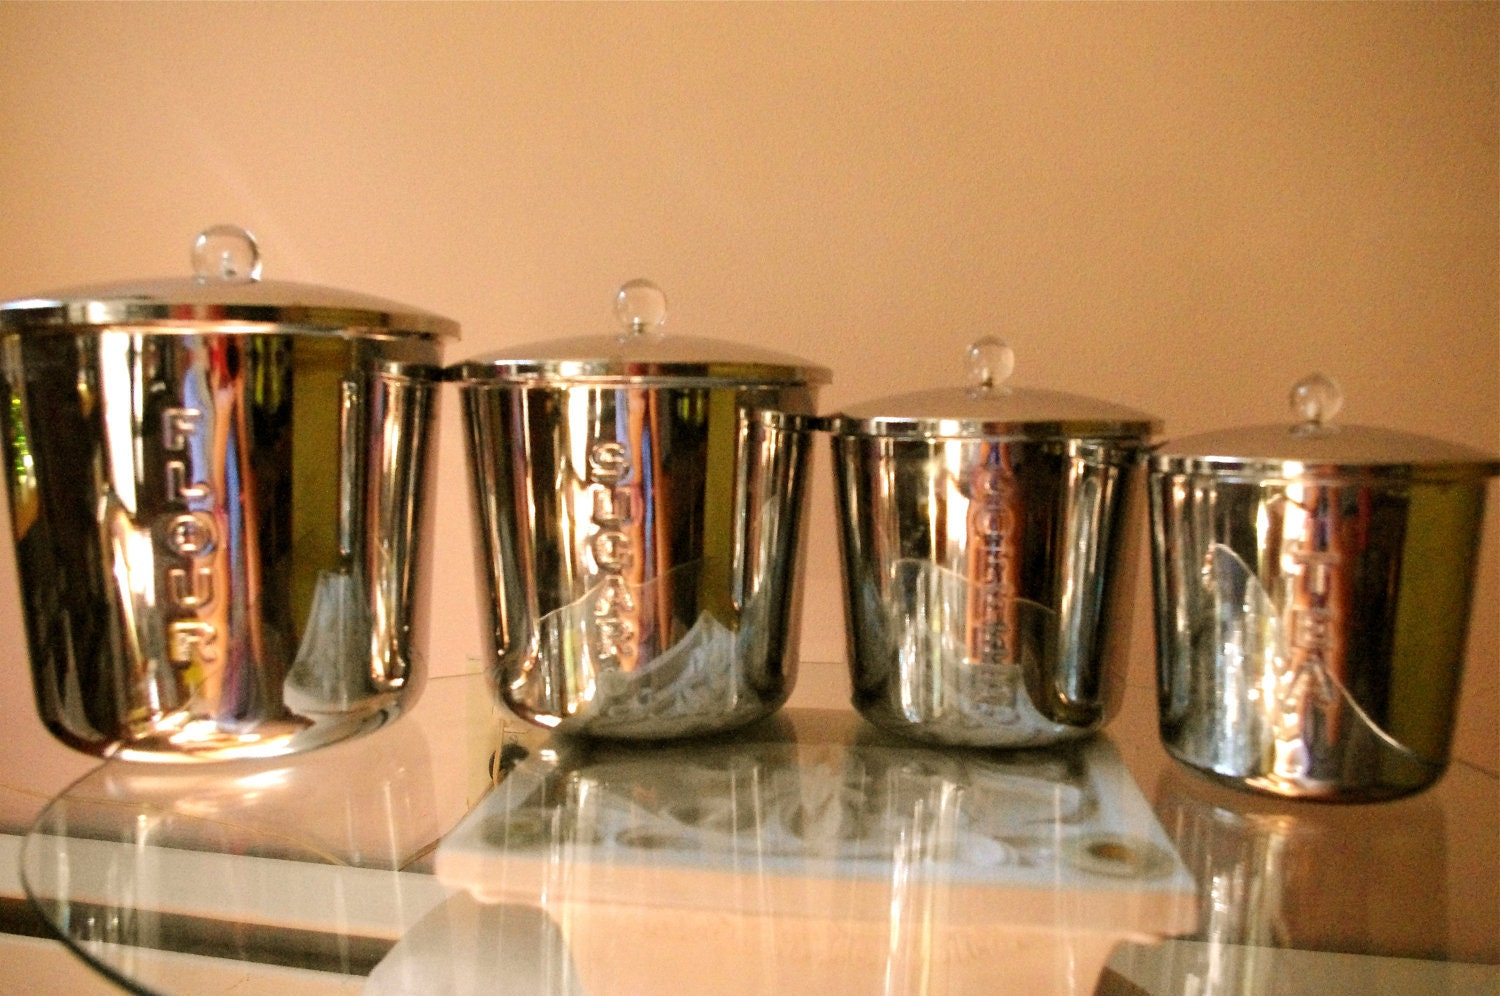 Vintage Set of 4 Everedy Stainless Steel Kitchen Canisters